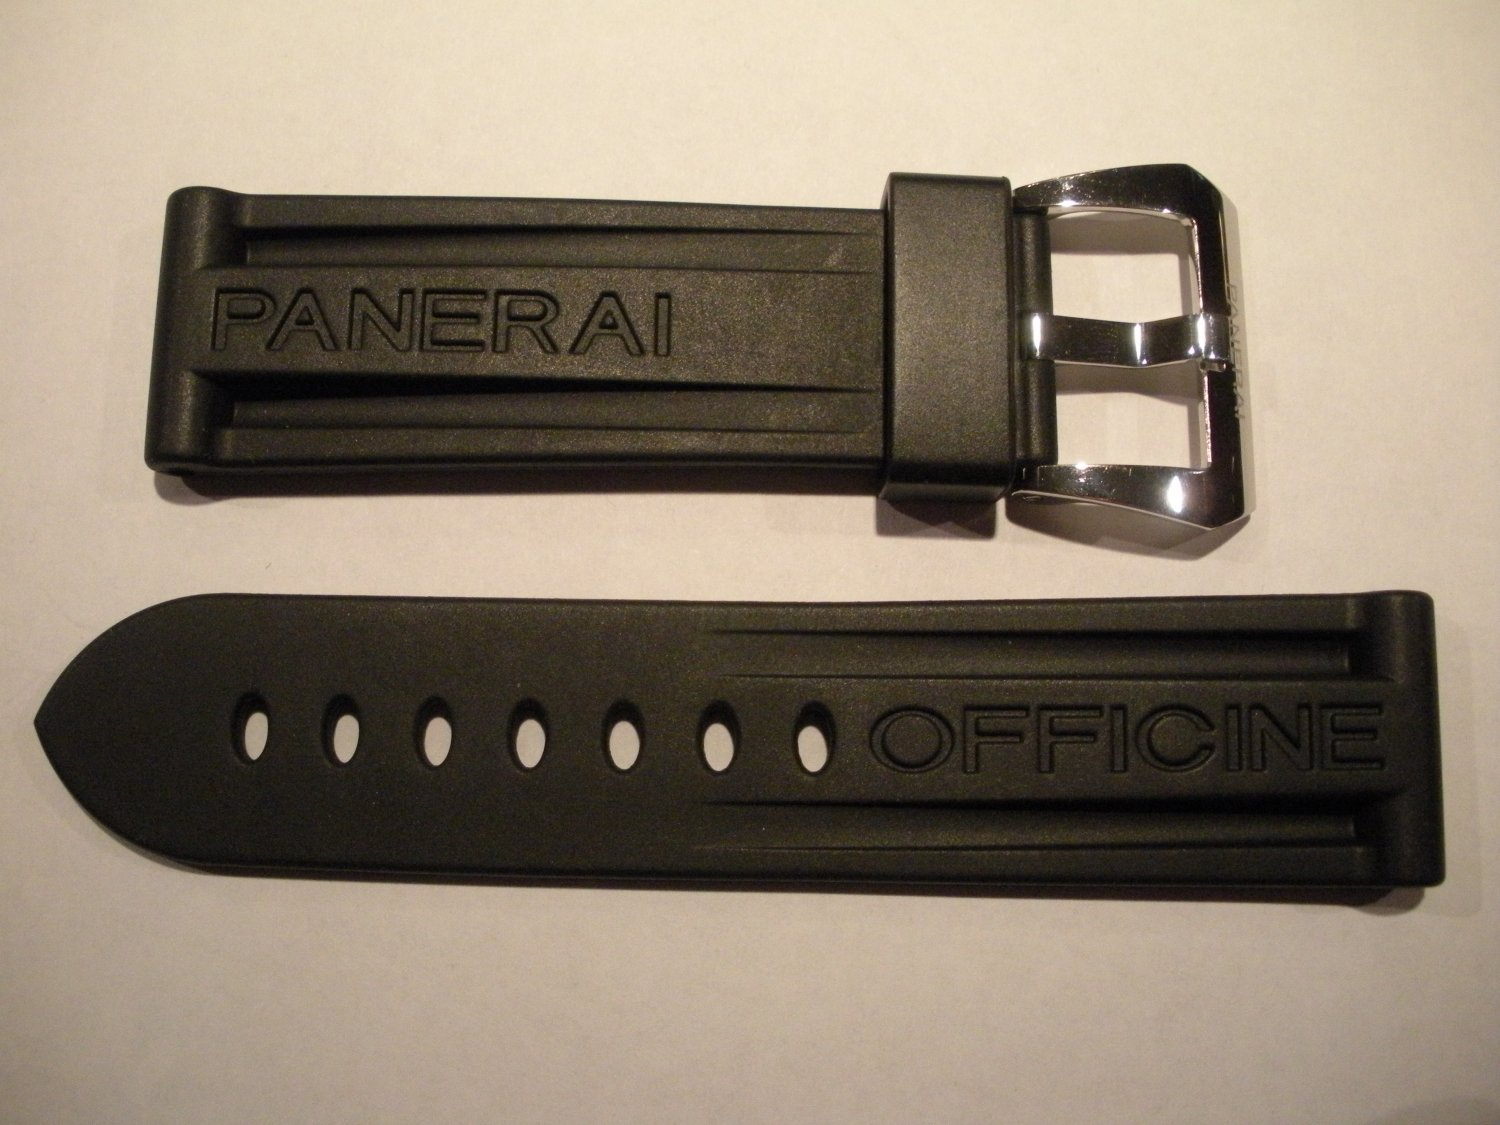 24mm Black Rubber Dive Strap w/ Polished Steel Buckle for Panerai